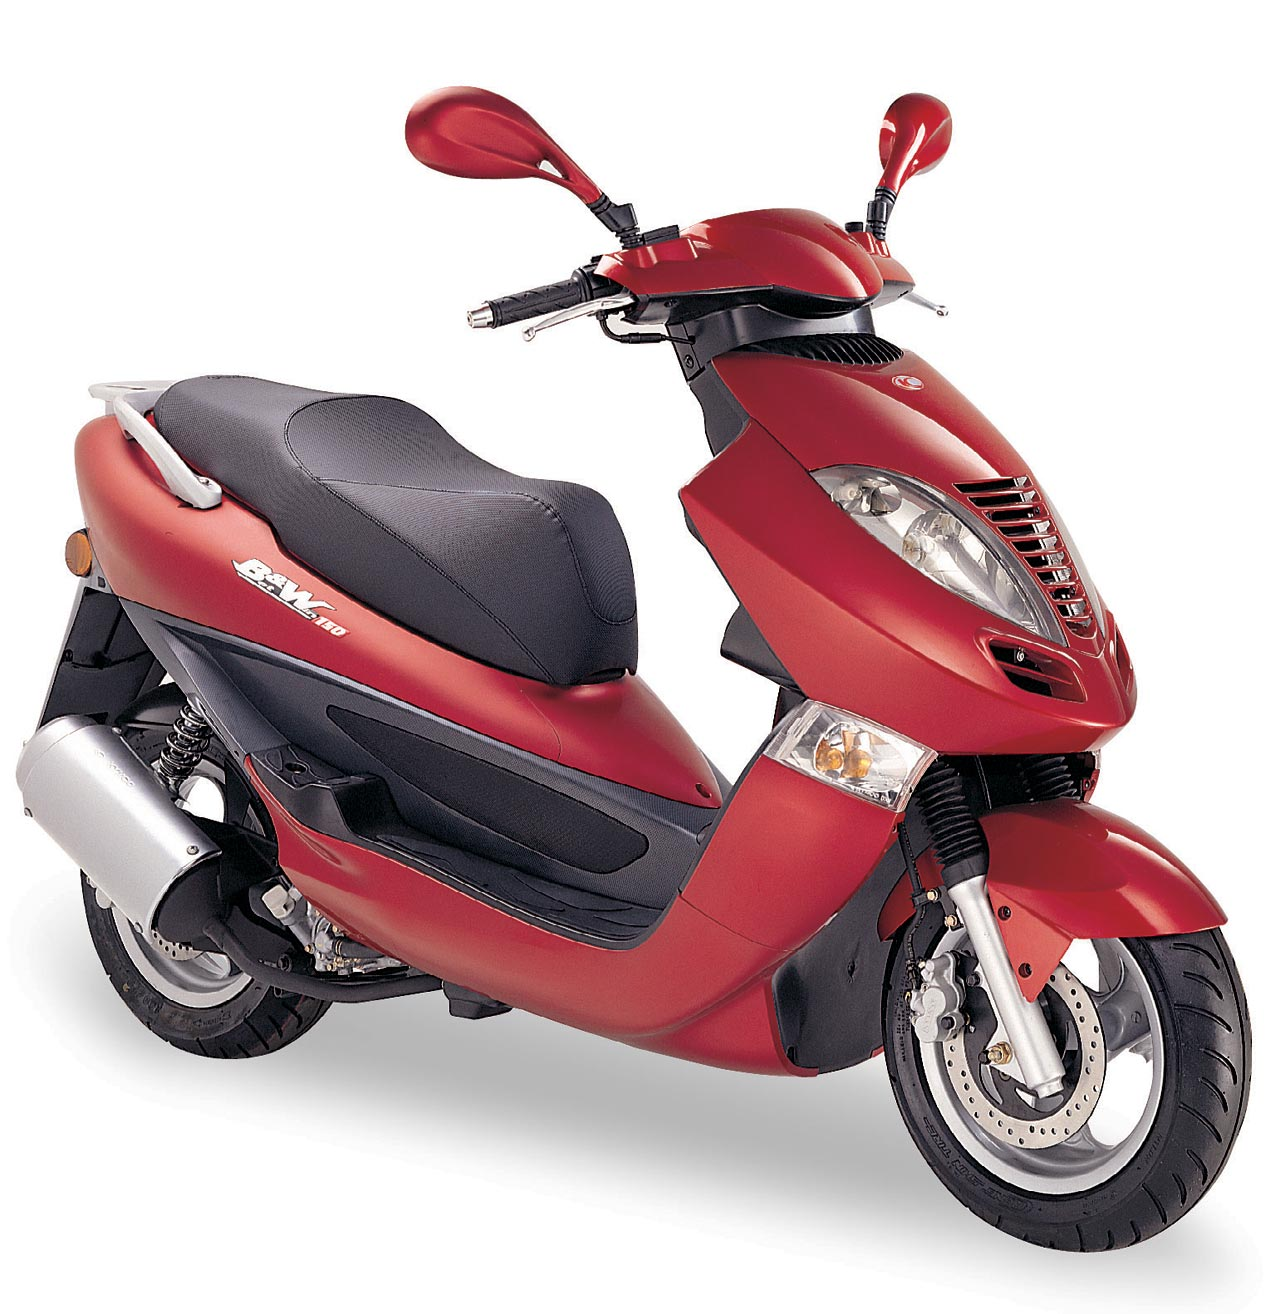 2005 Kymco Bet and Win 250 #9